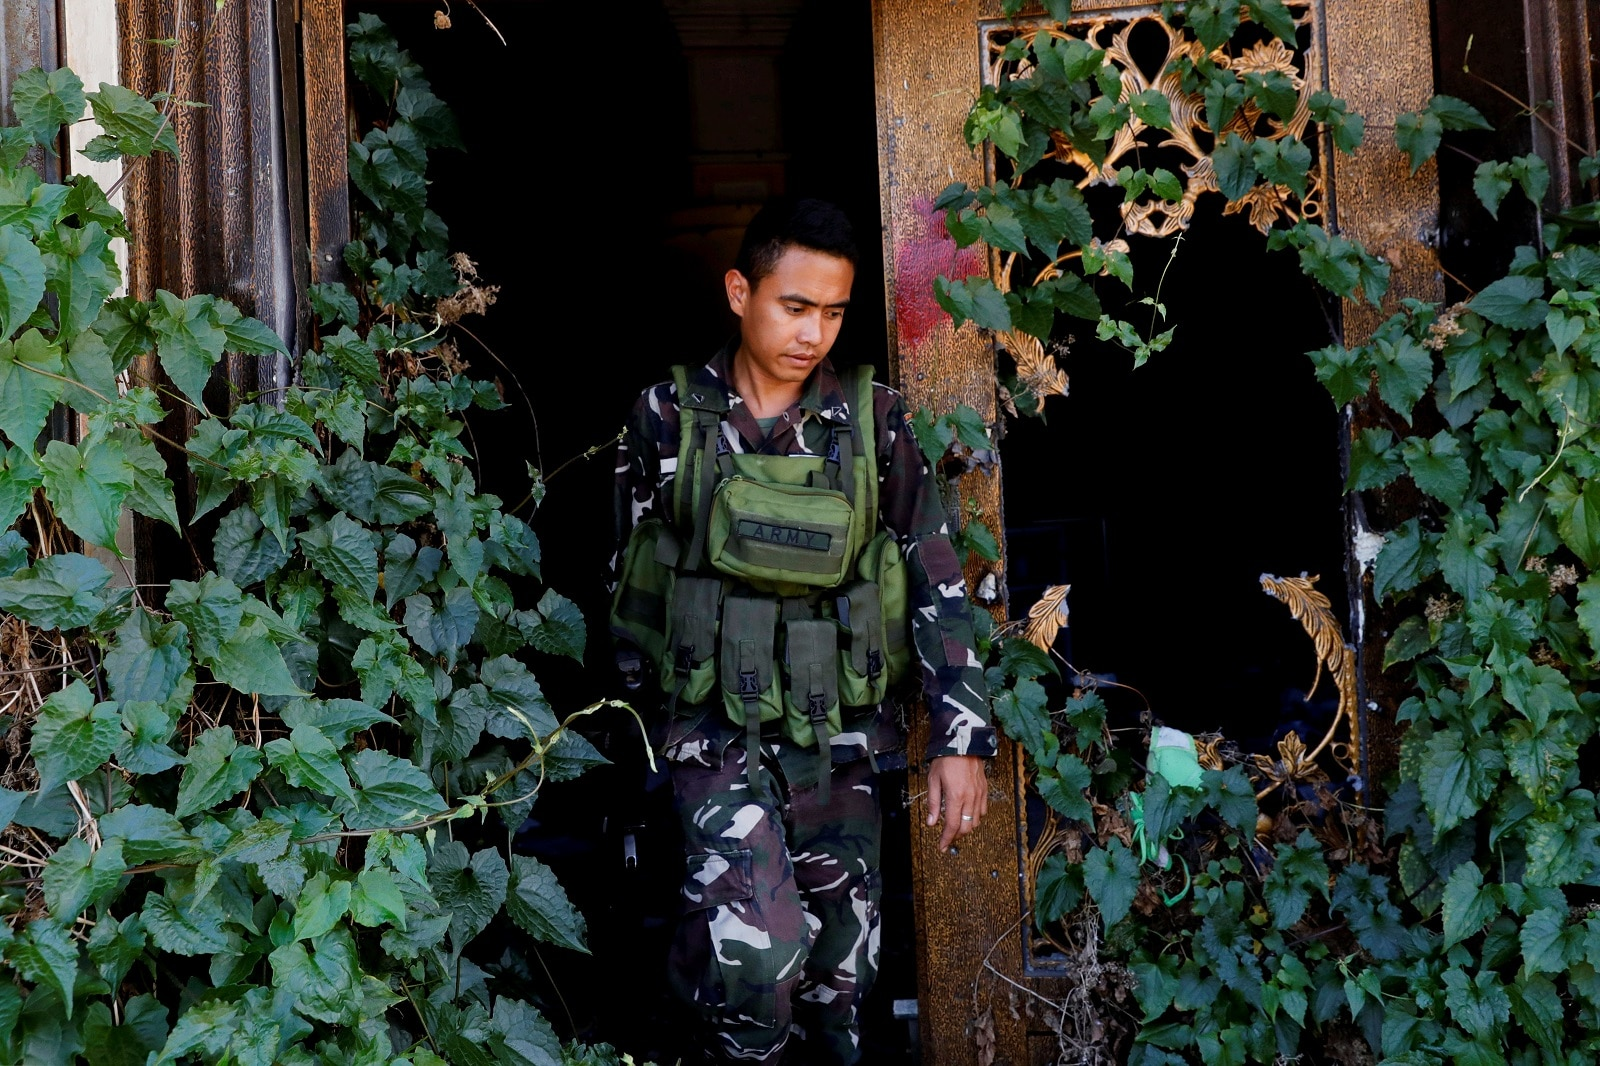 A soldier walks out of a destroyed structure at the most affected war-torn area of Marawi City, Lanao del Sur province, Philippines, May 11, 2019. REUTERS/Eloisa Lopez